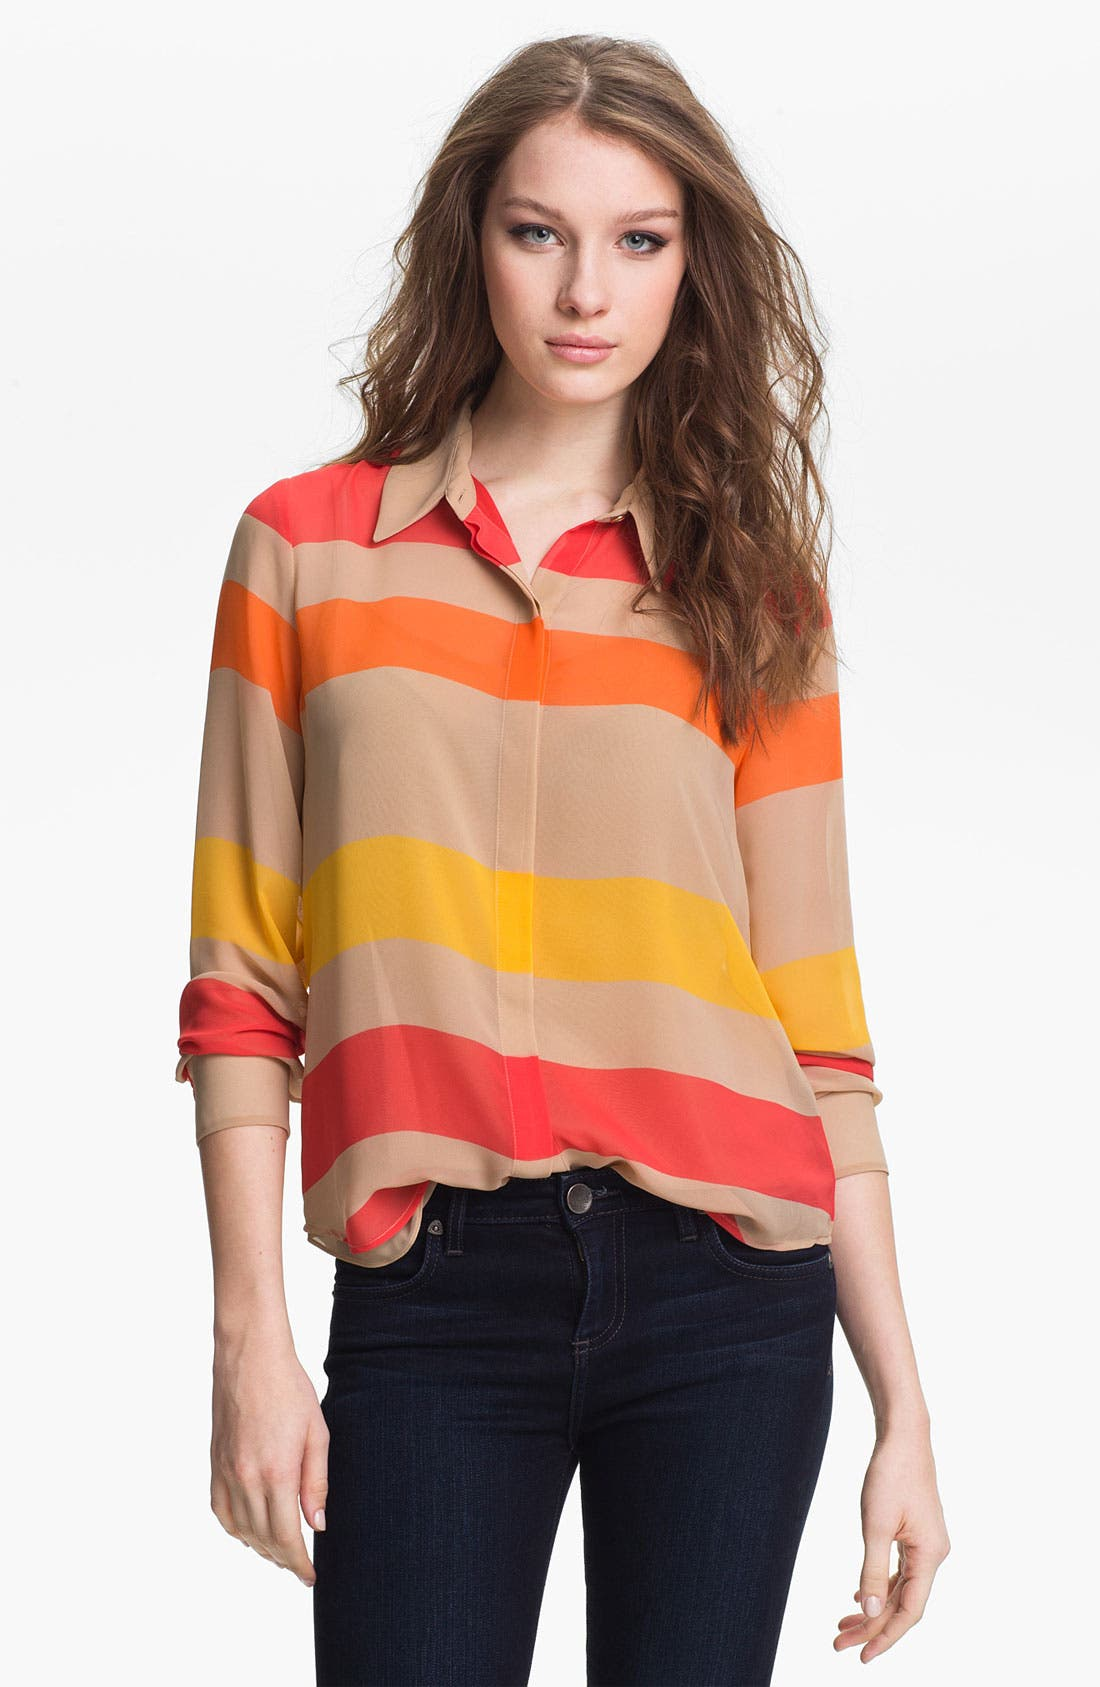 Main Image - Vince Camuto Multi Stripe Blouse with Camisole